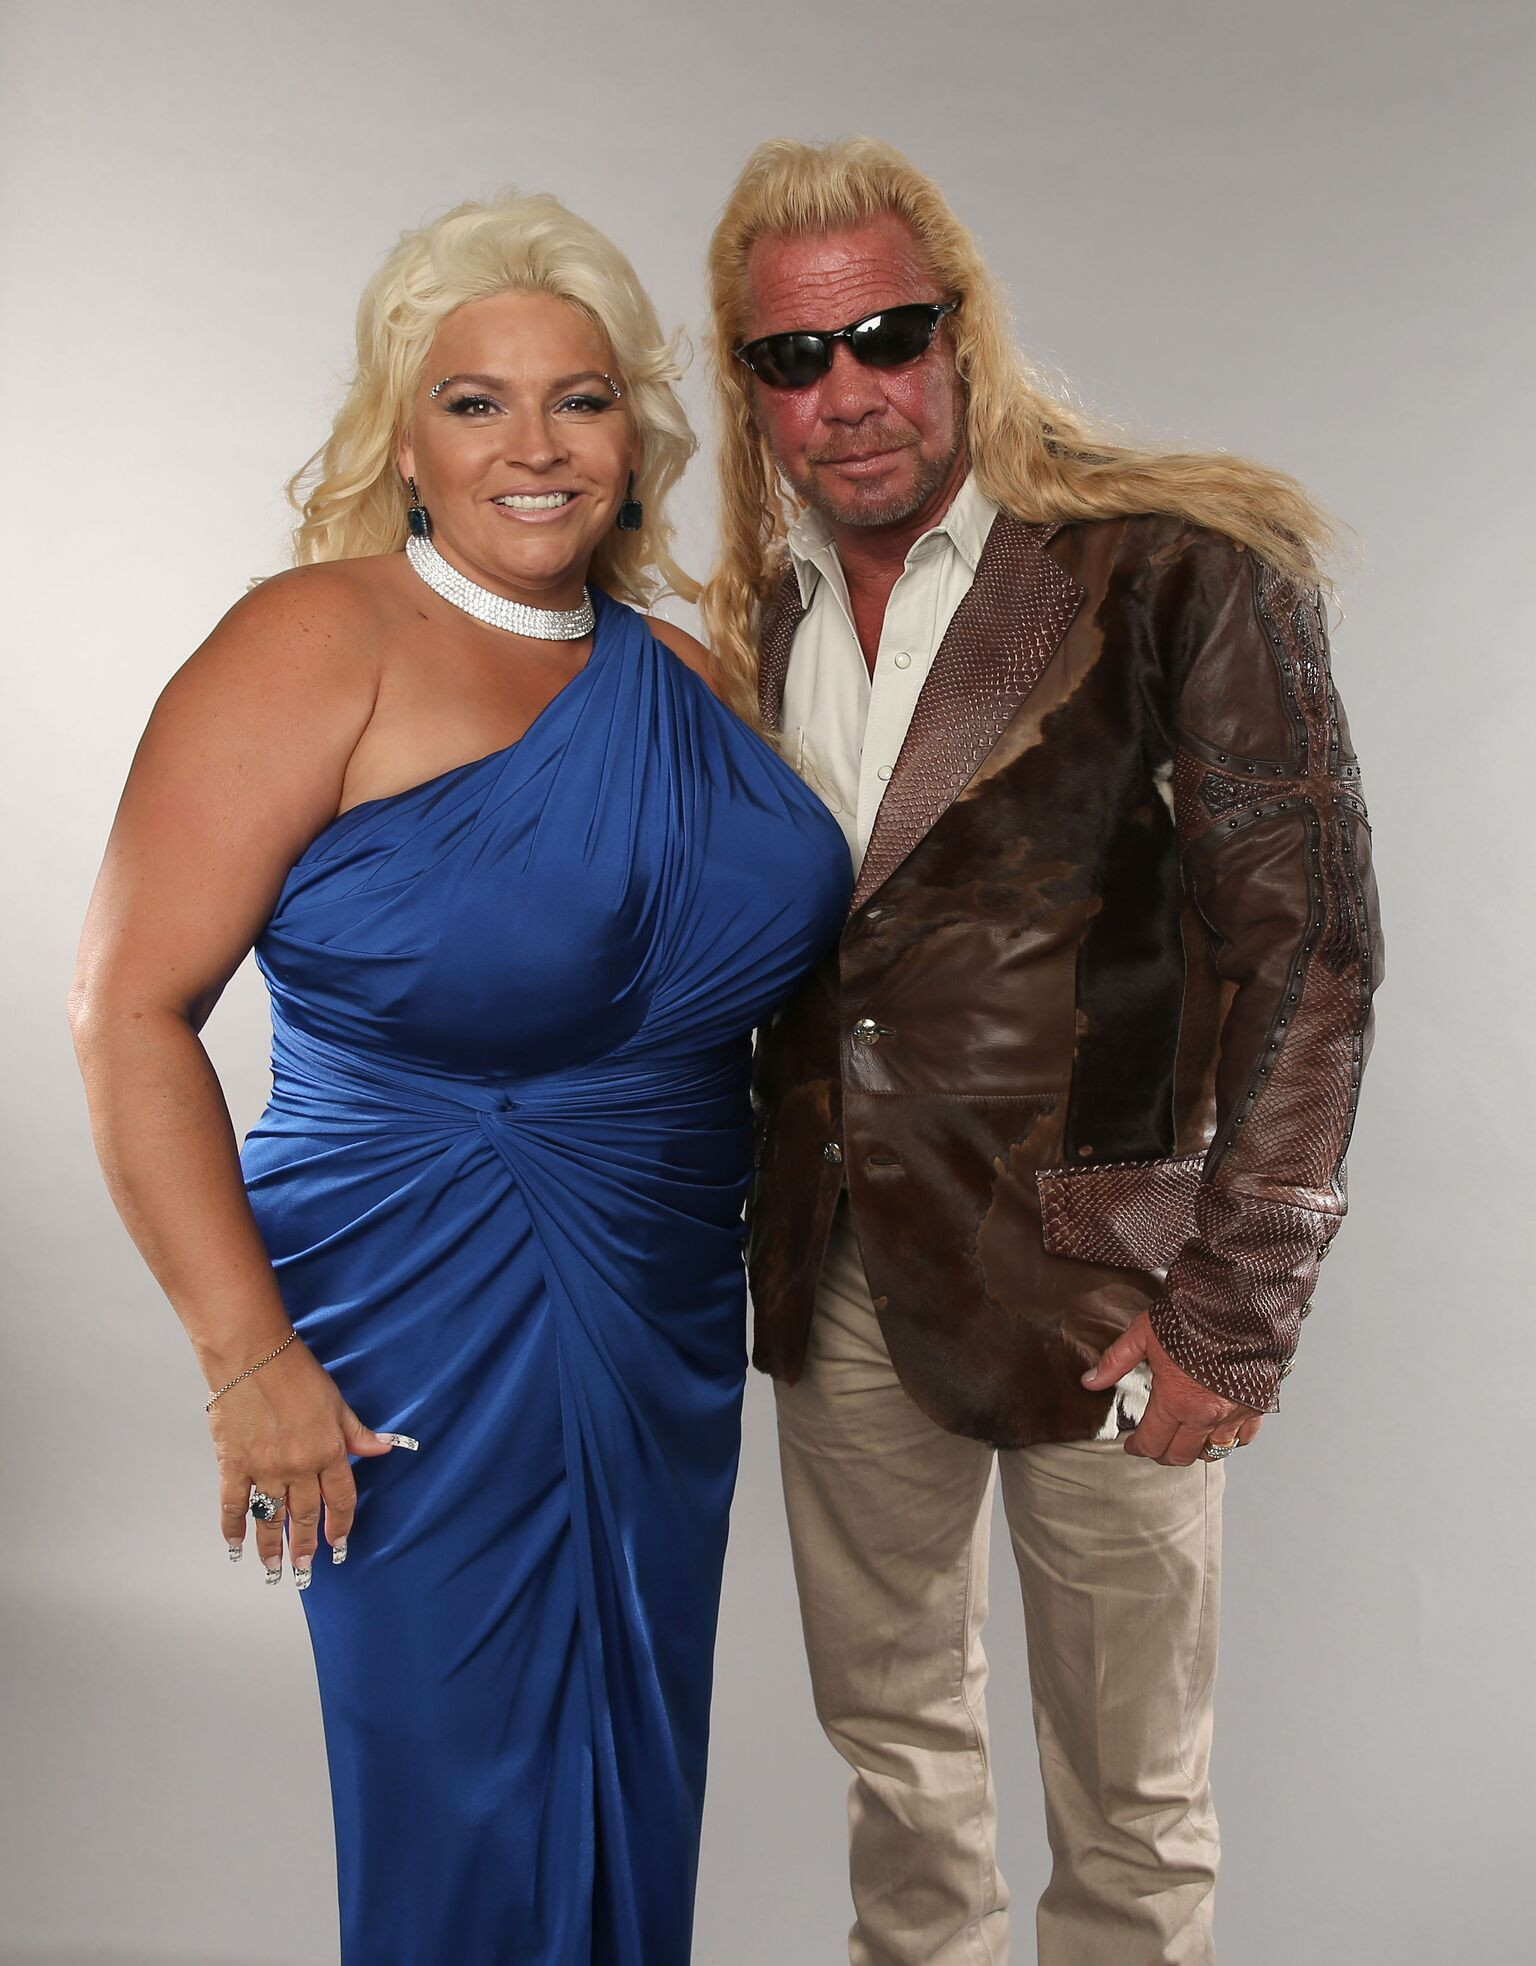 Duane Dog Lee Chapman and Beth Chapman pose at the Wonderwall portrait studio during the 2013 CMT Music Awards  | Getty Images